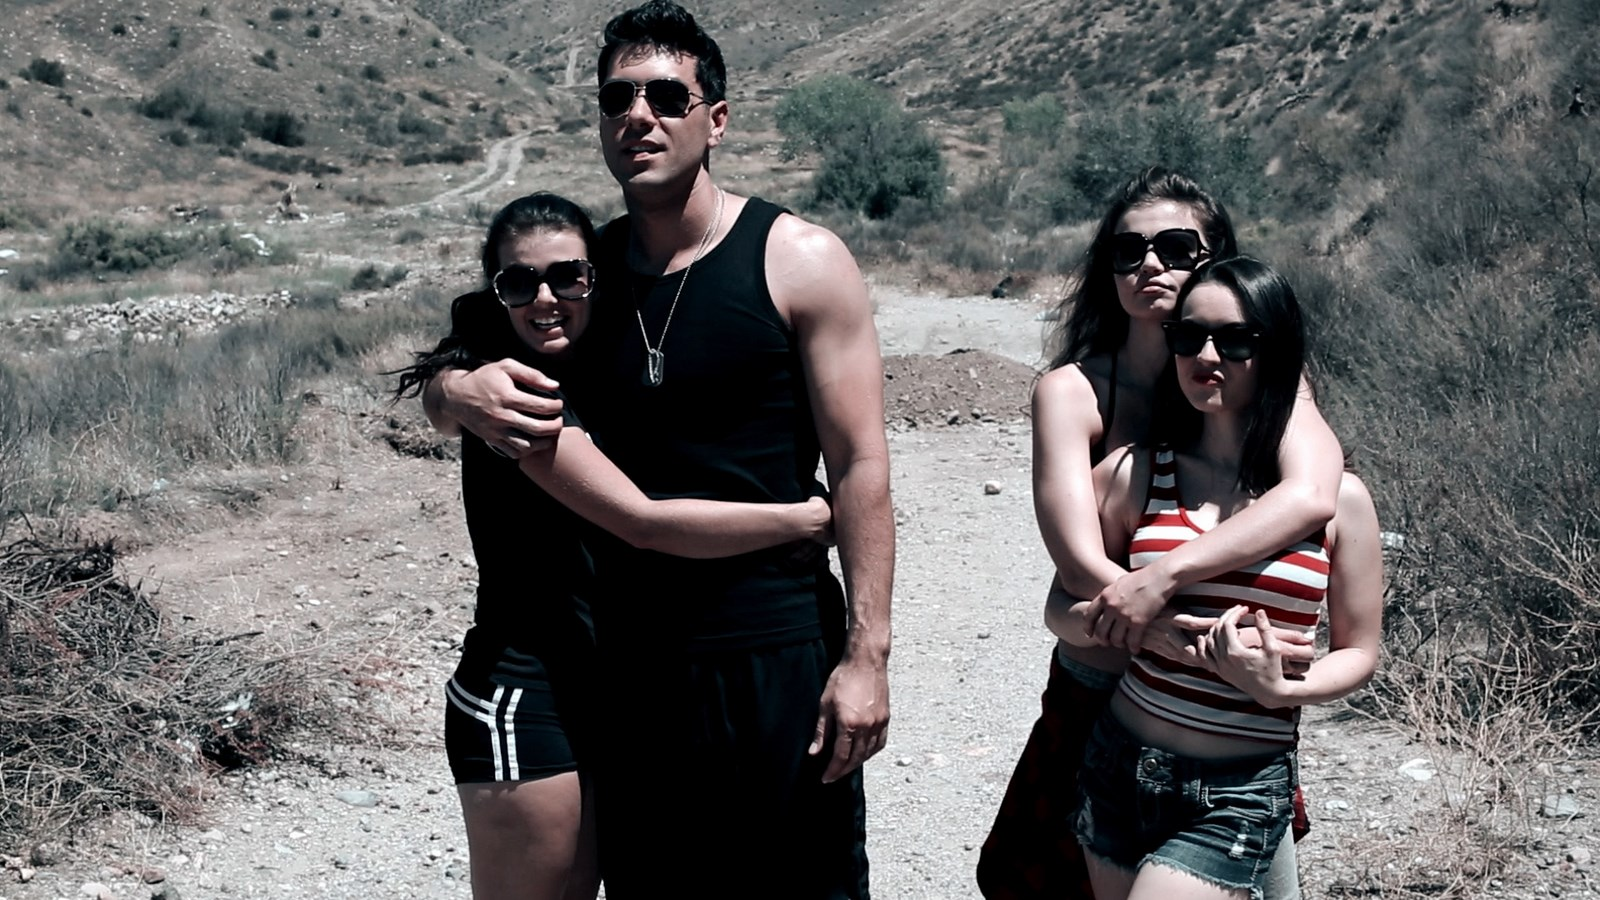 (l to r) Marlene Mc'Cohen (also the film's director), Toby Maka, and girlfriends Genna Mc'Cohen and Kinga Rosen in Interstellar Wars (2016)